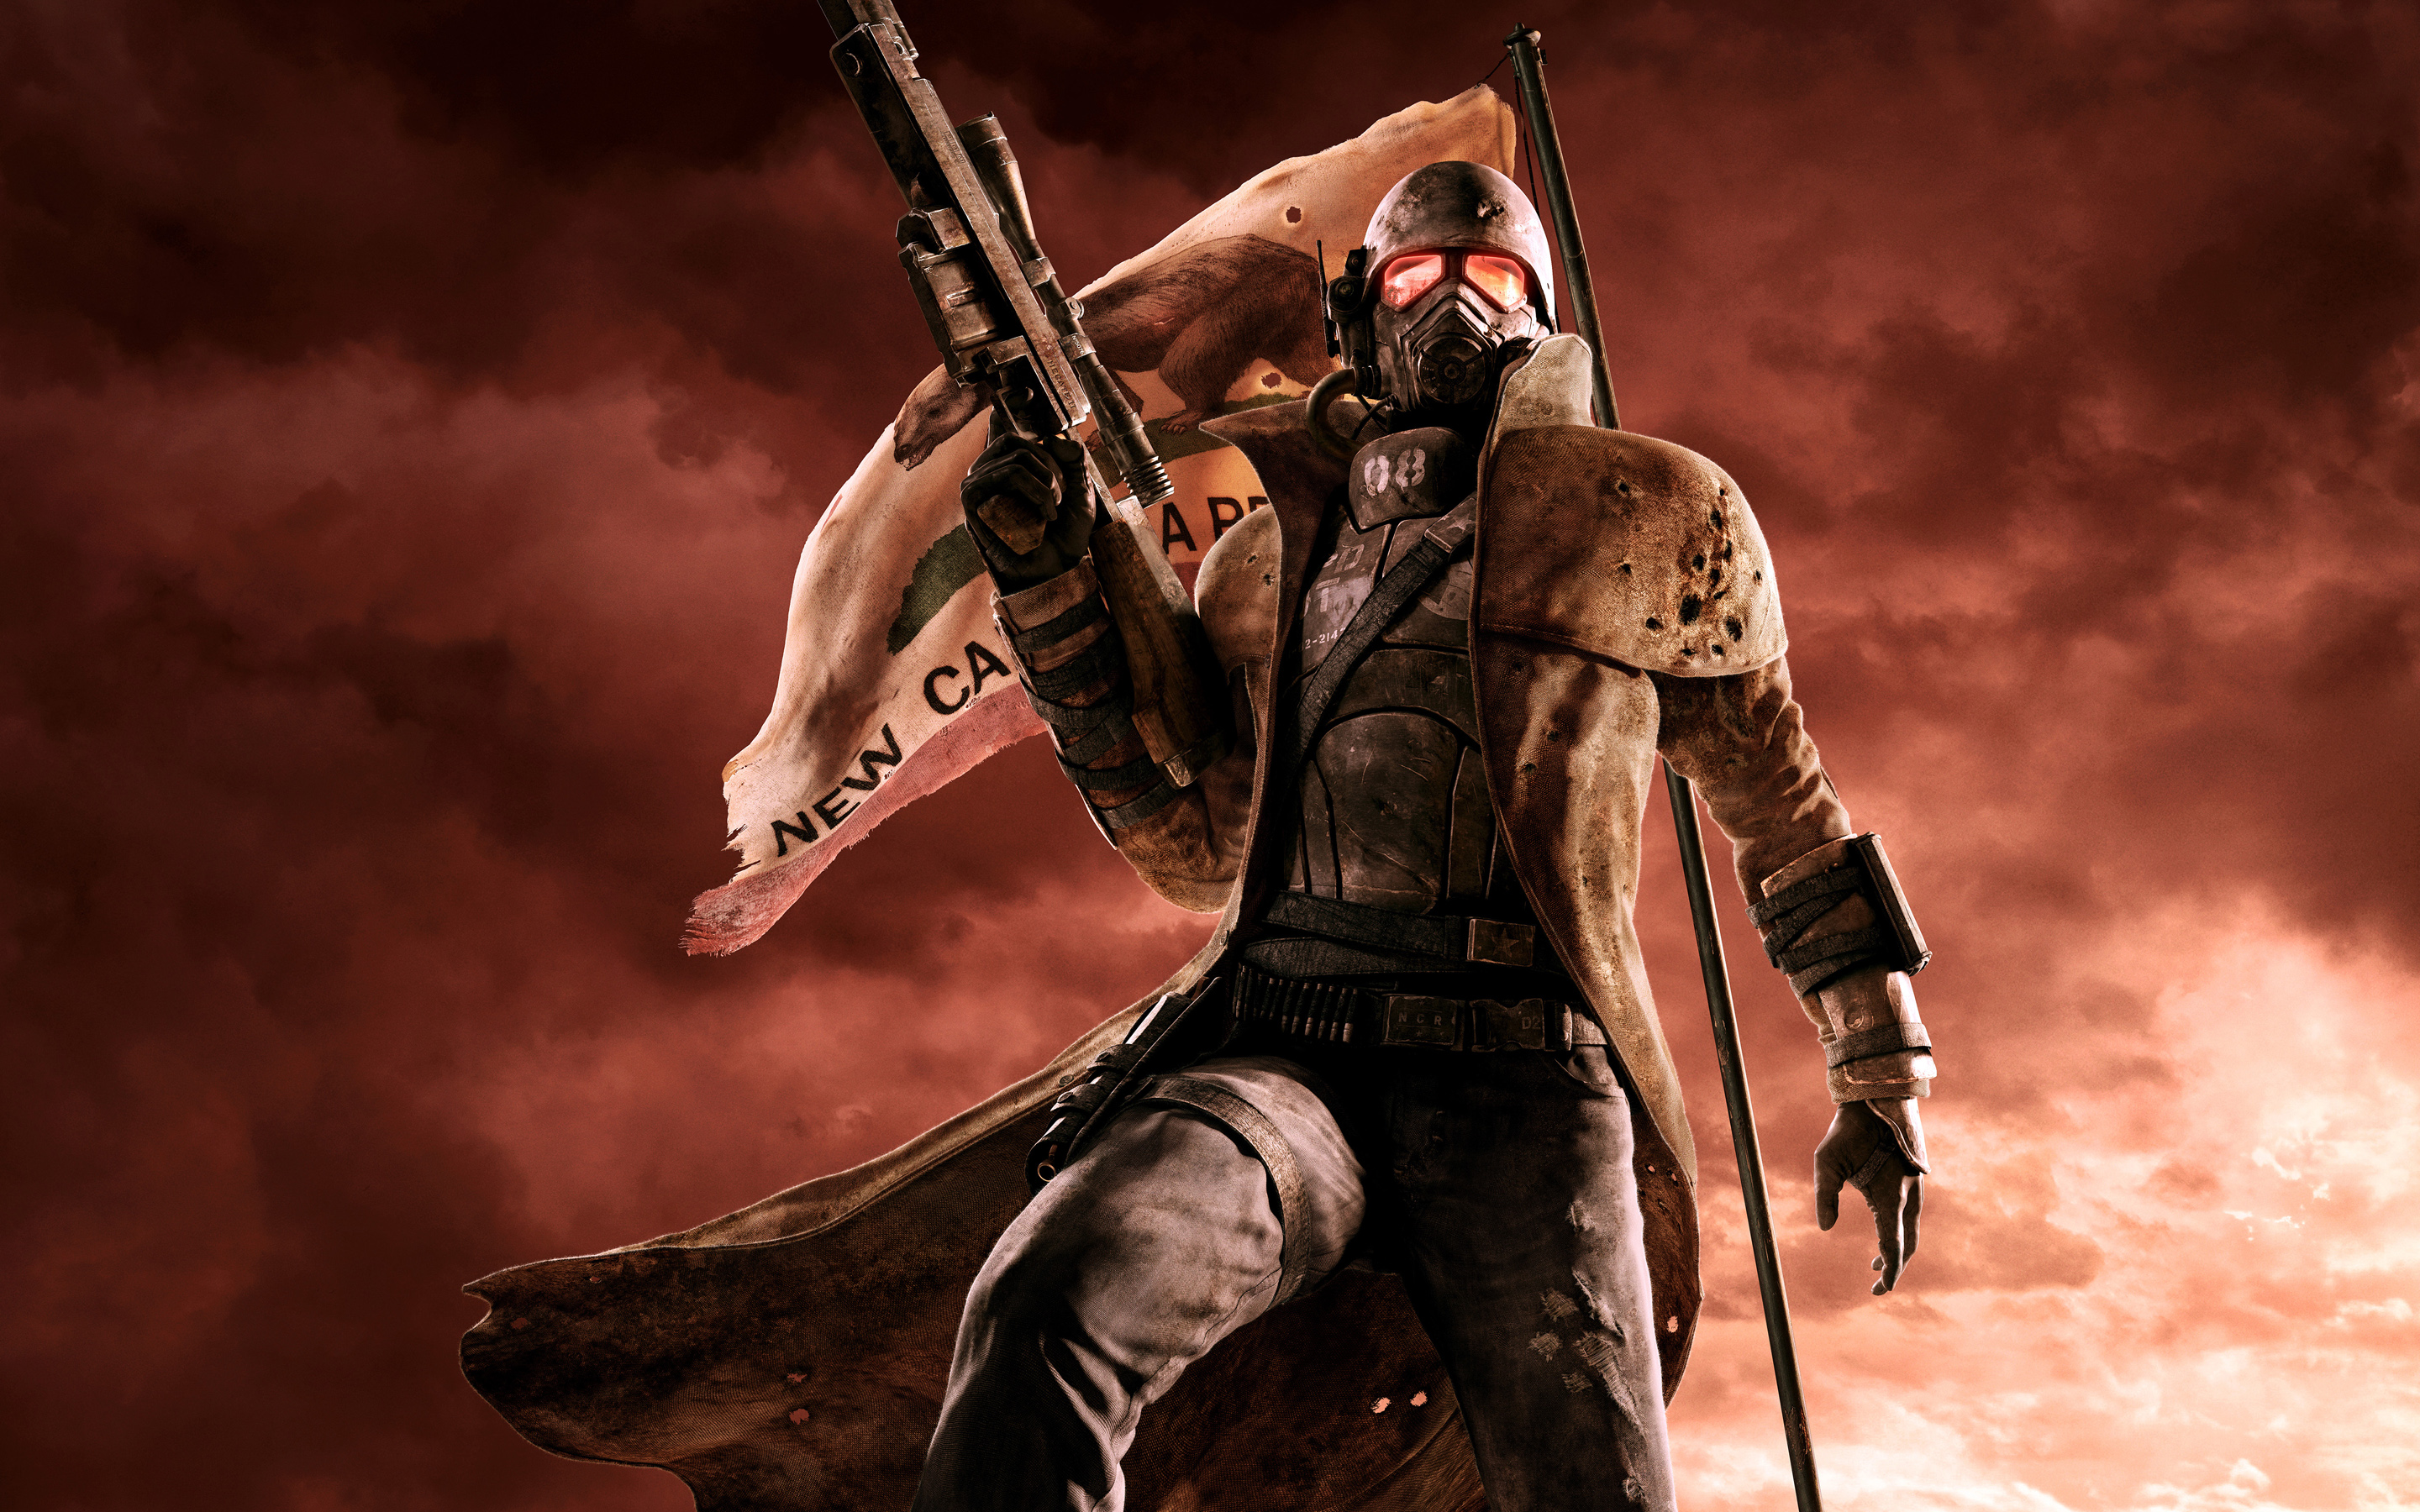 Free Download Fallout New Vegas Wallpapers Hd Wallpapers